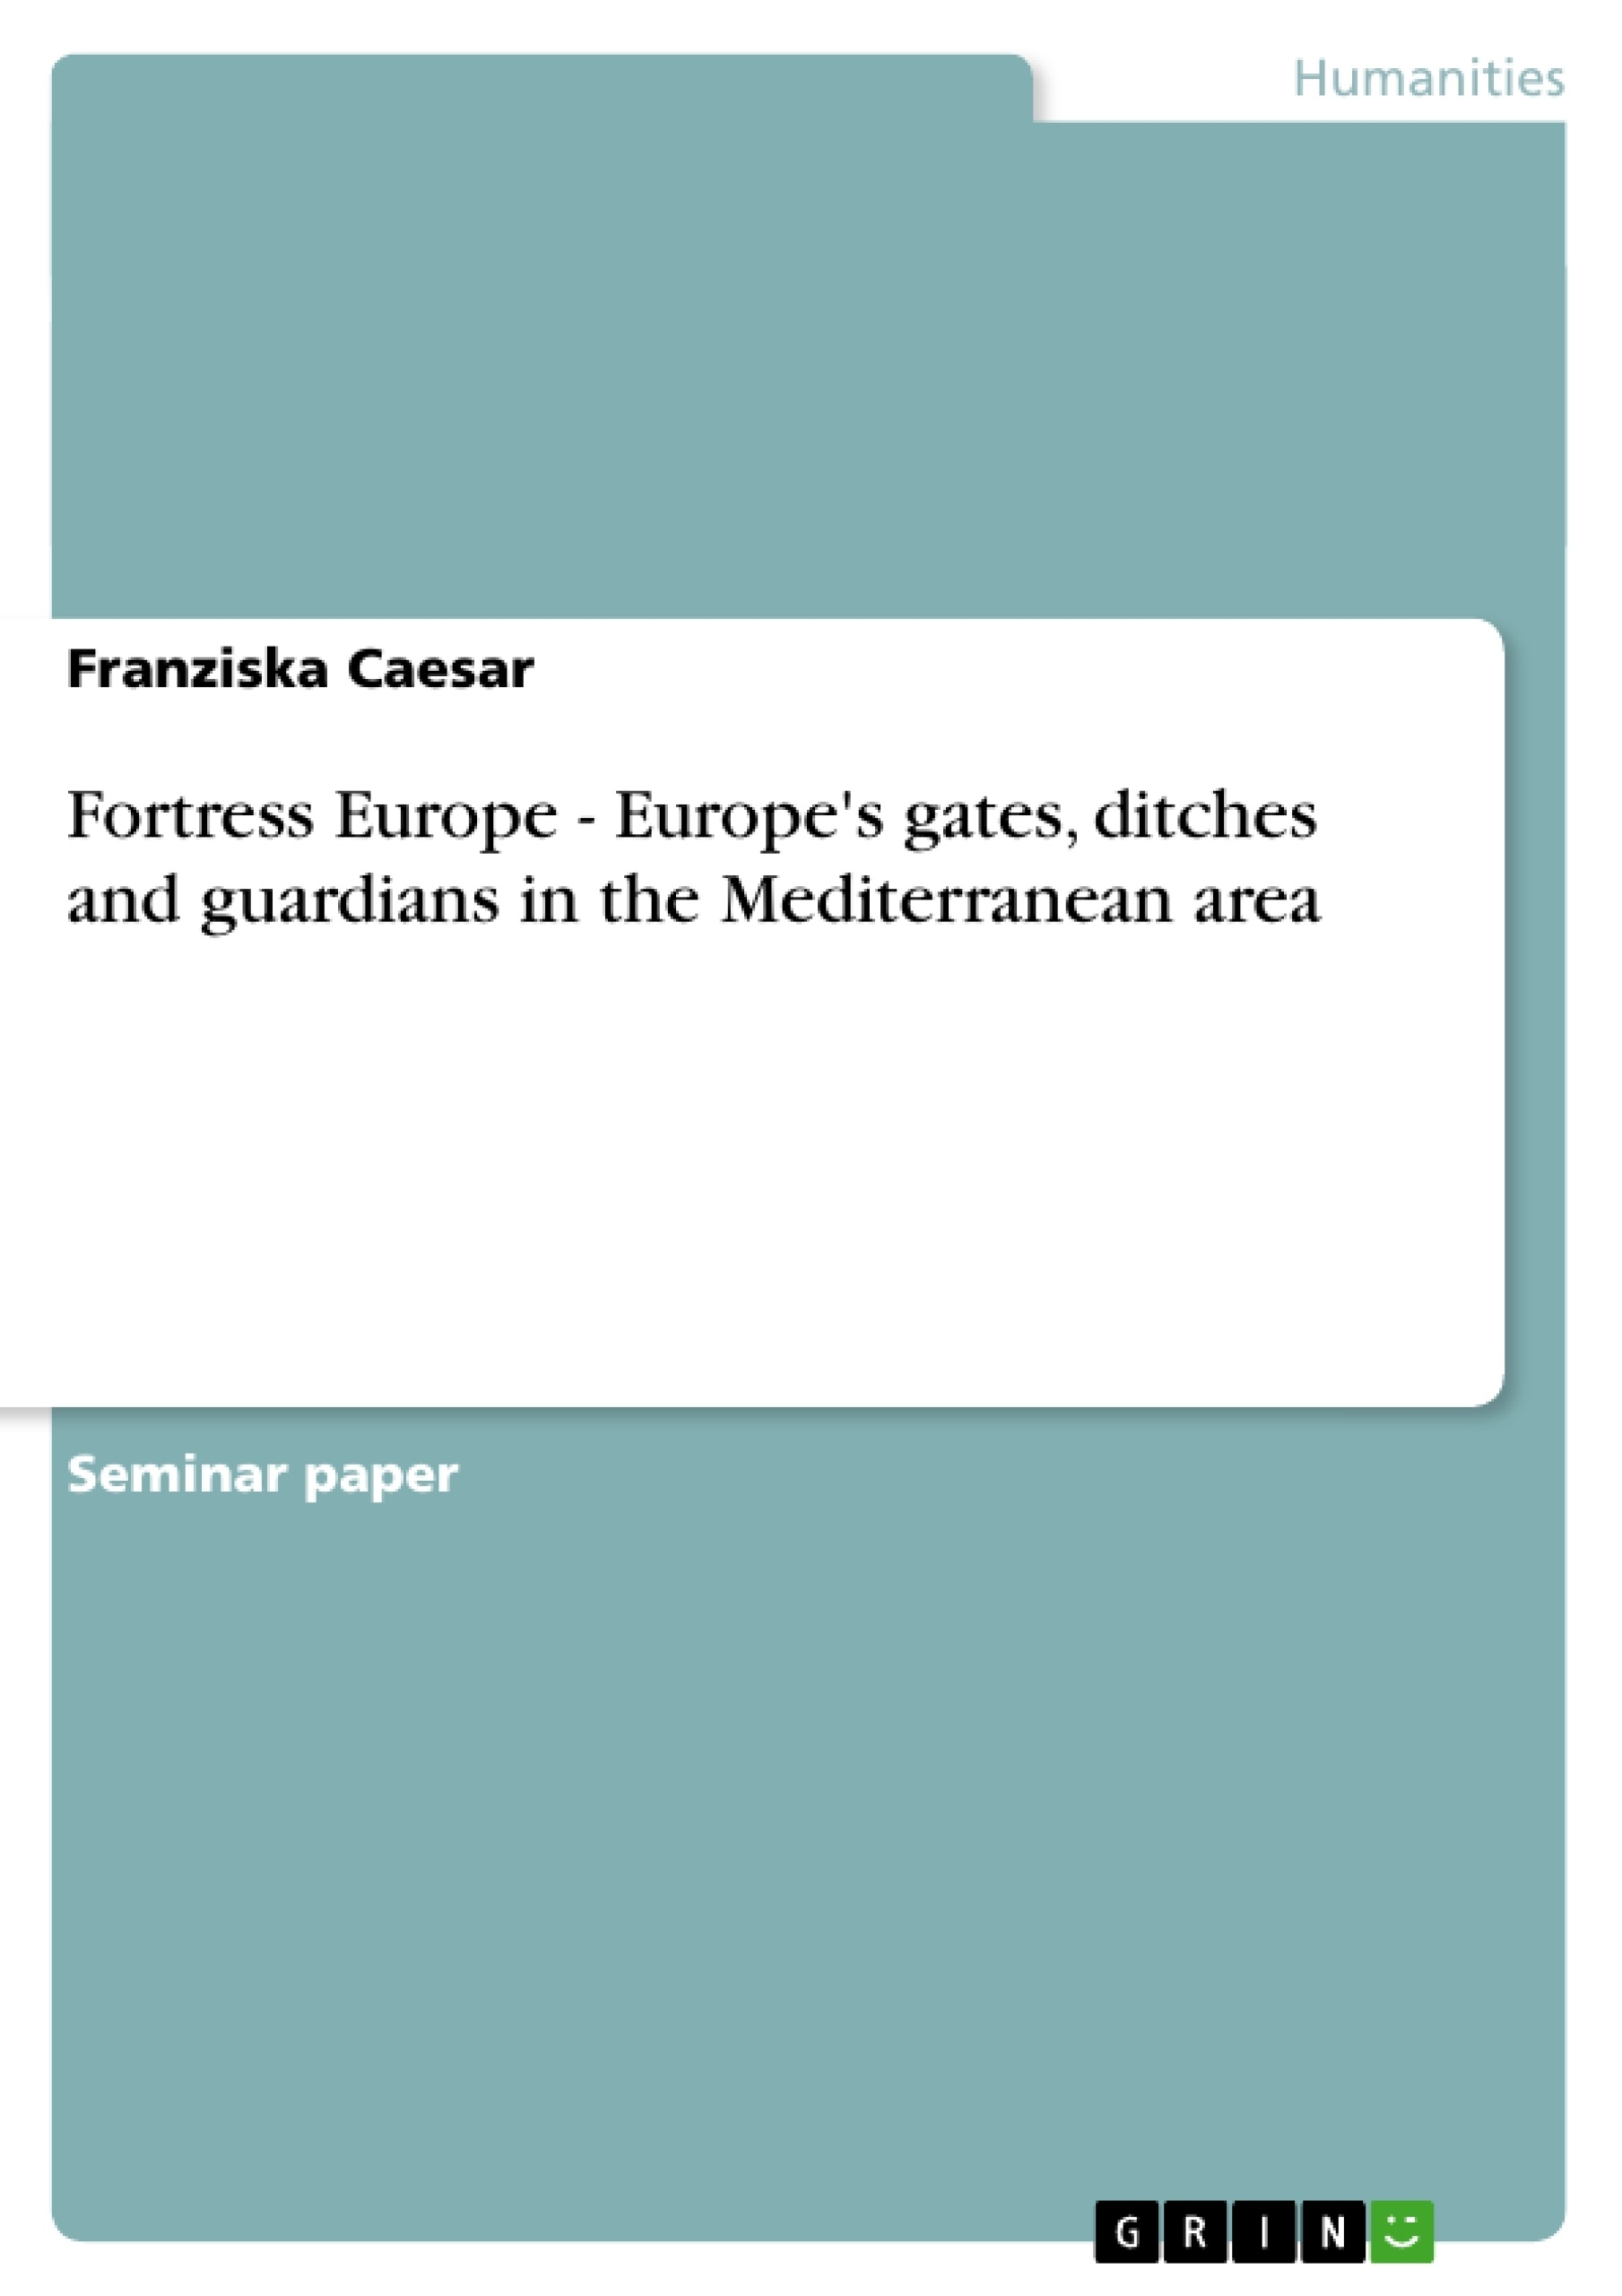 Title: Fortress Europe - Europe's gates, ditches and guardians in the Mediterranean area